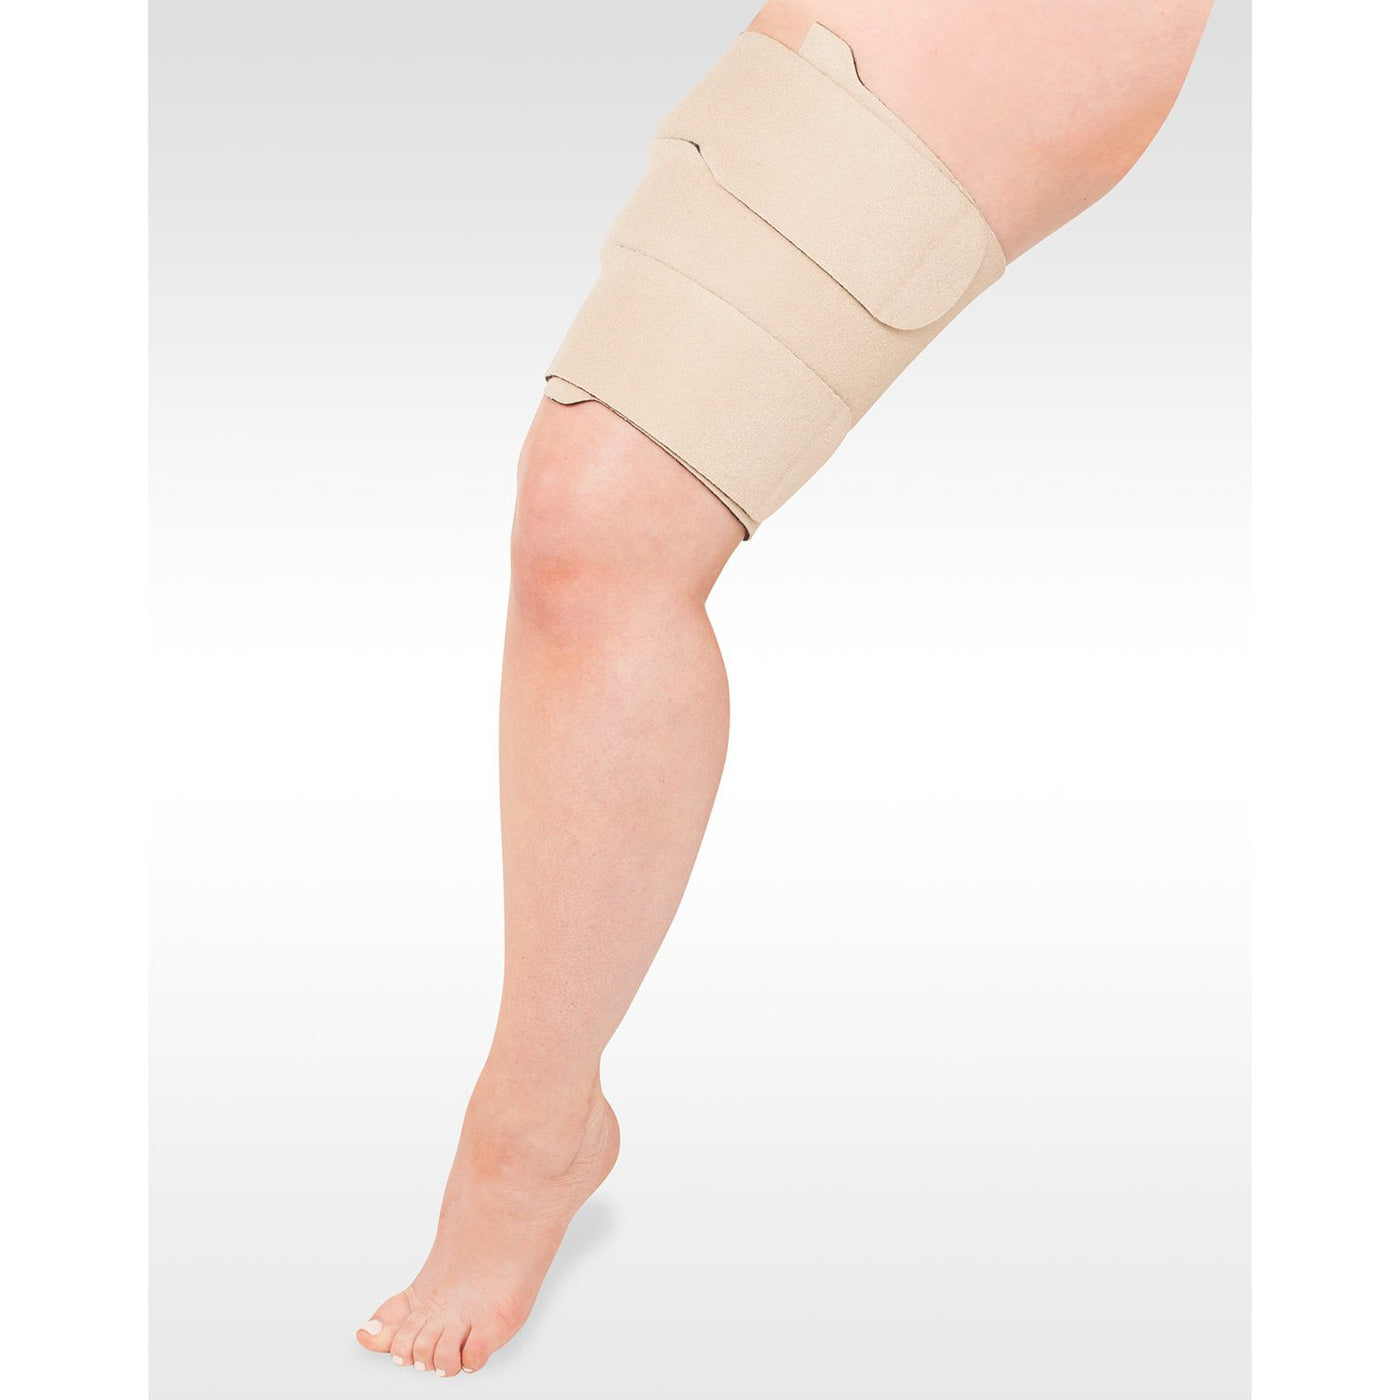 bright life lymphedema lymphedema compression garments leg